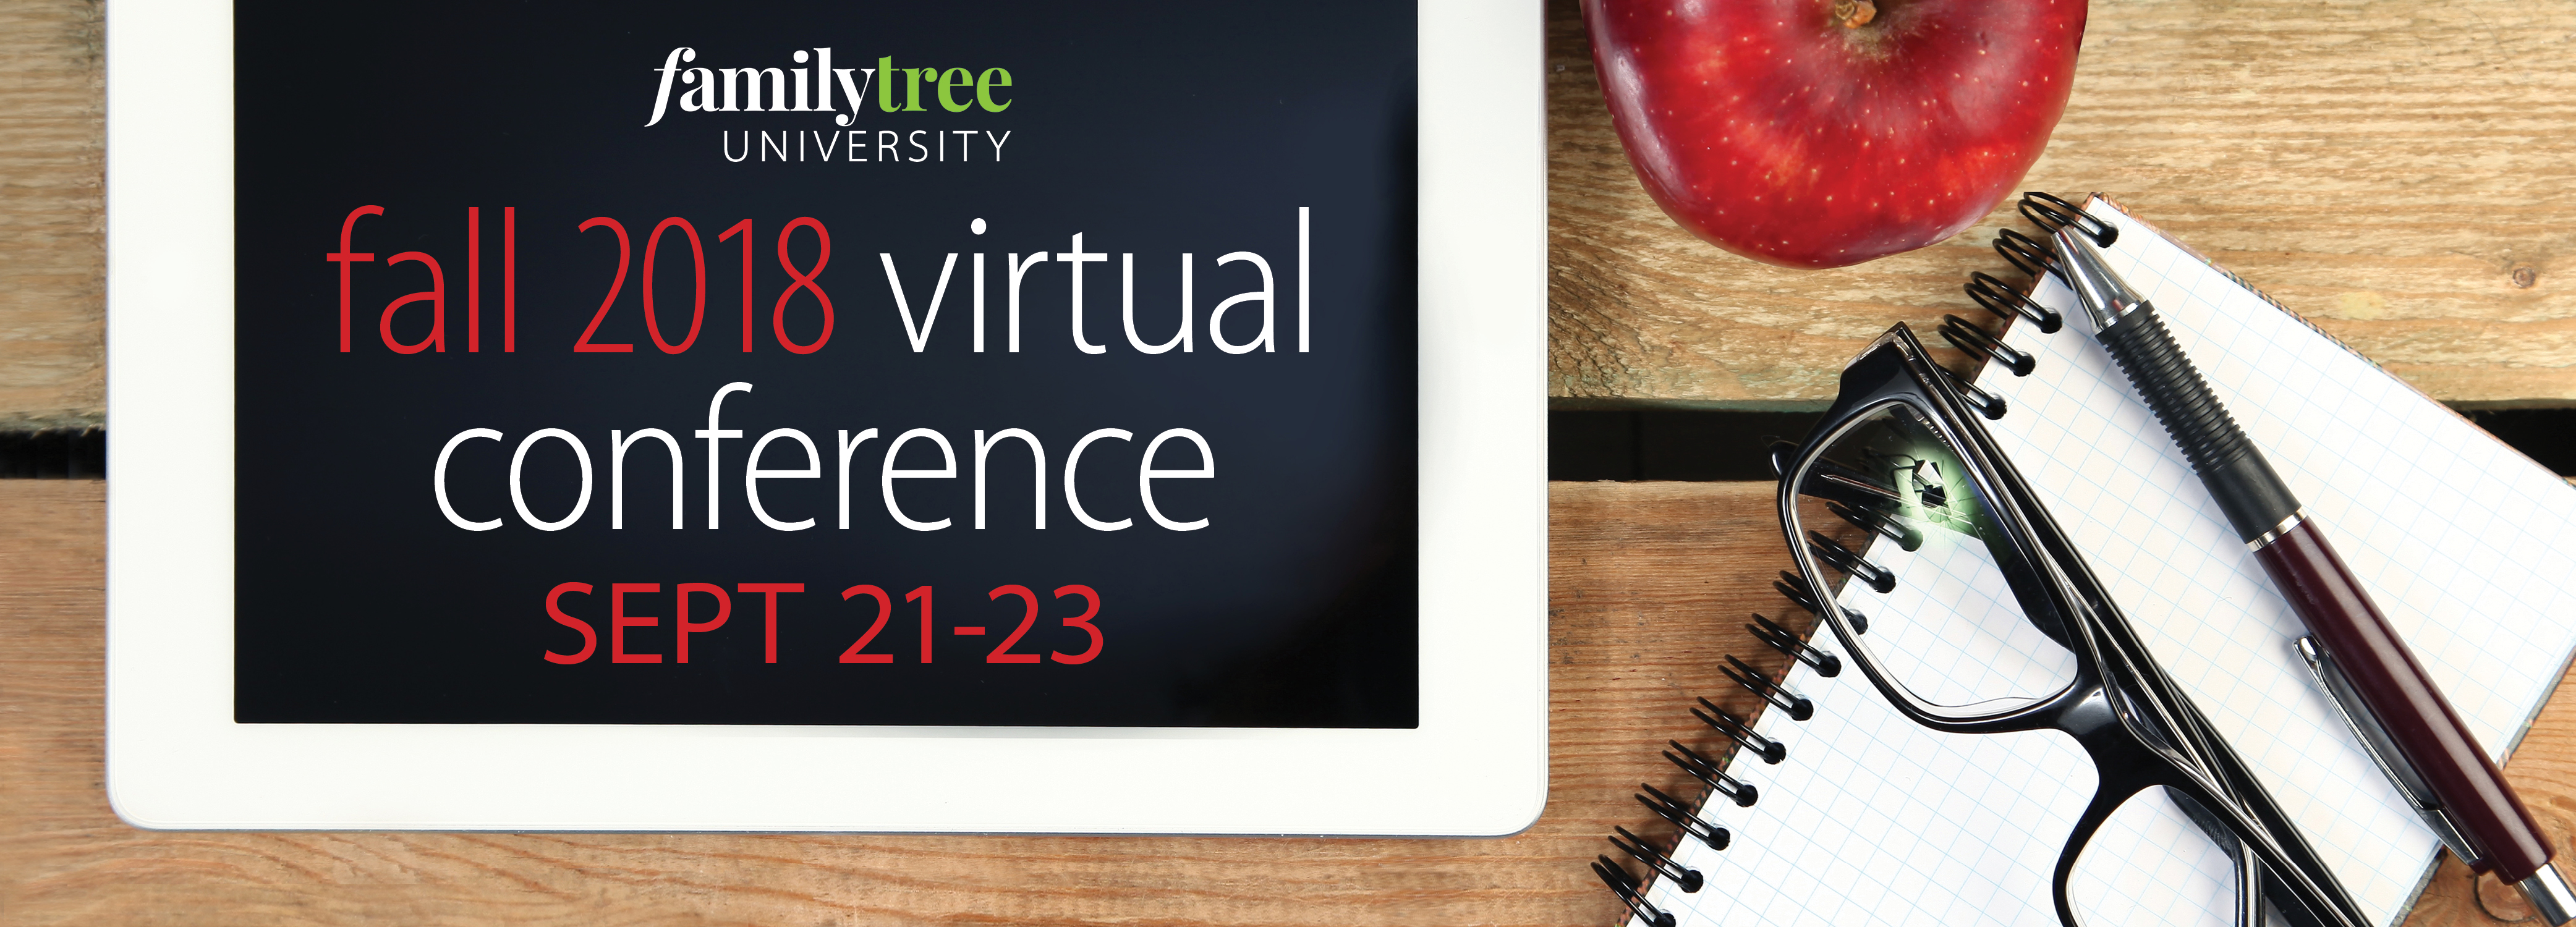 Bring your brick walls down with the tips, tricks and techniques you'll learn in the 2018 Fall Virtual Conference